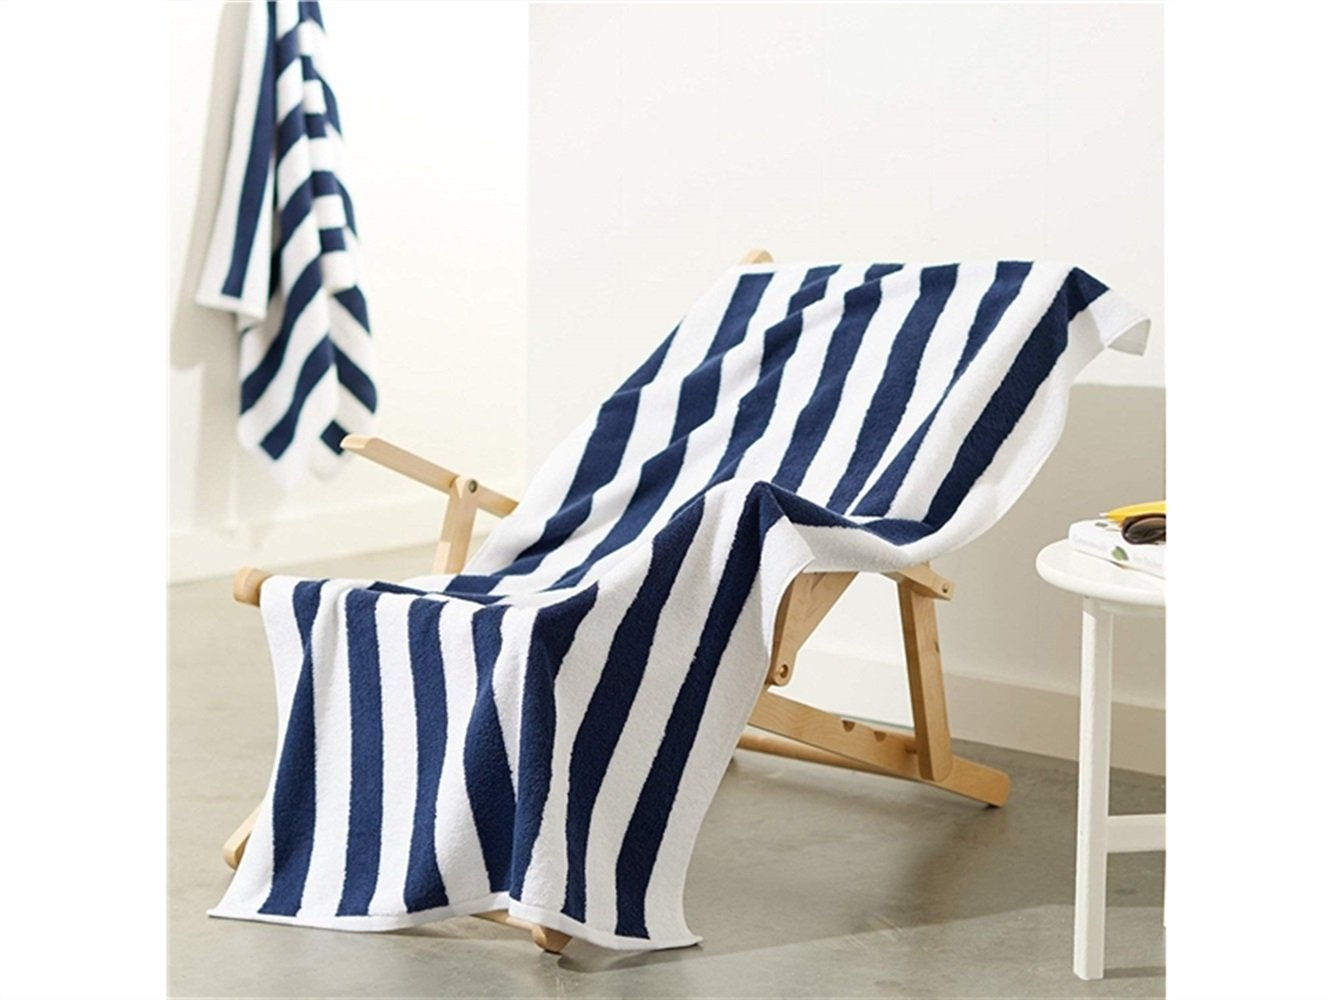 YOIOY Baby Swaddle Wrap Hotel Quality Beach Towel Comfortable Cotton Bath Towe (Blue and White Stripesl 70x150cm) by YOIOY